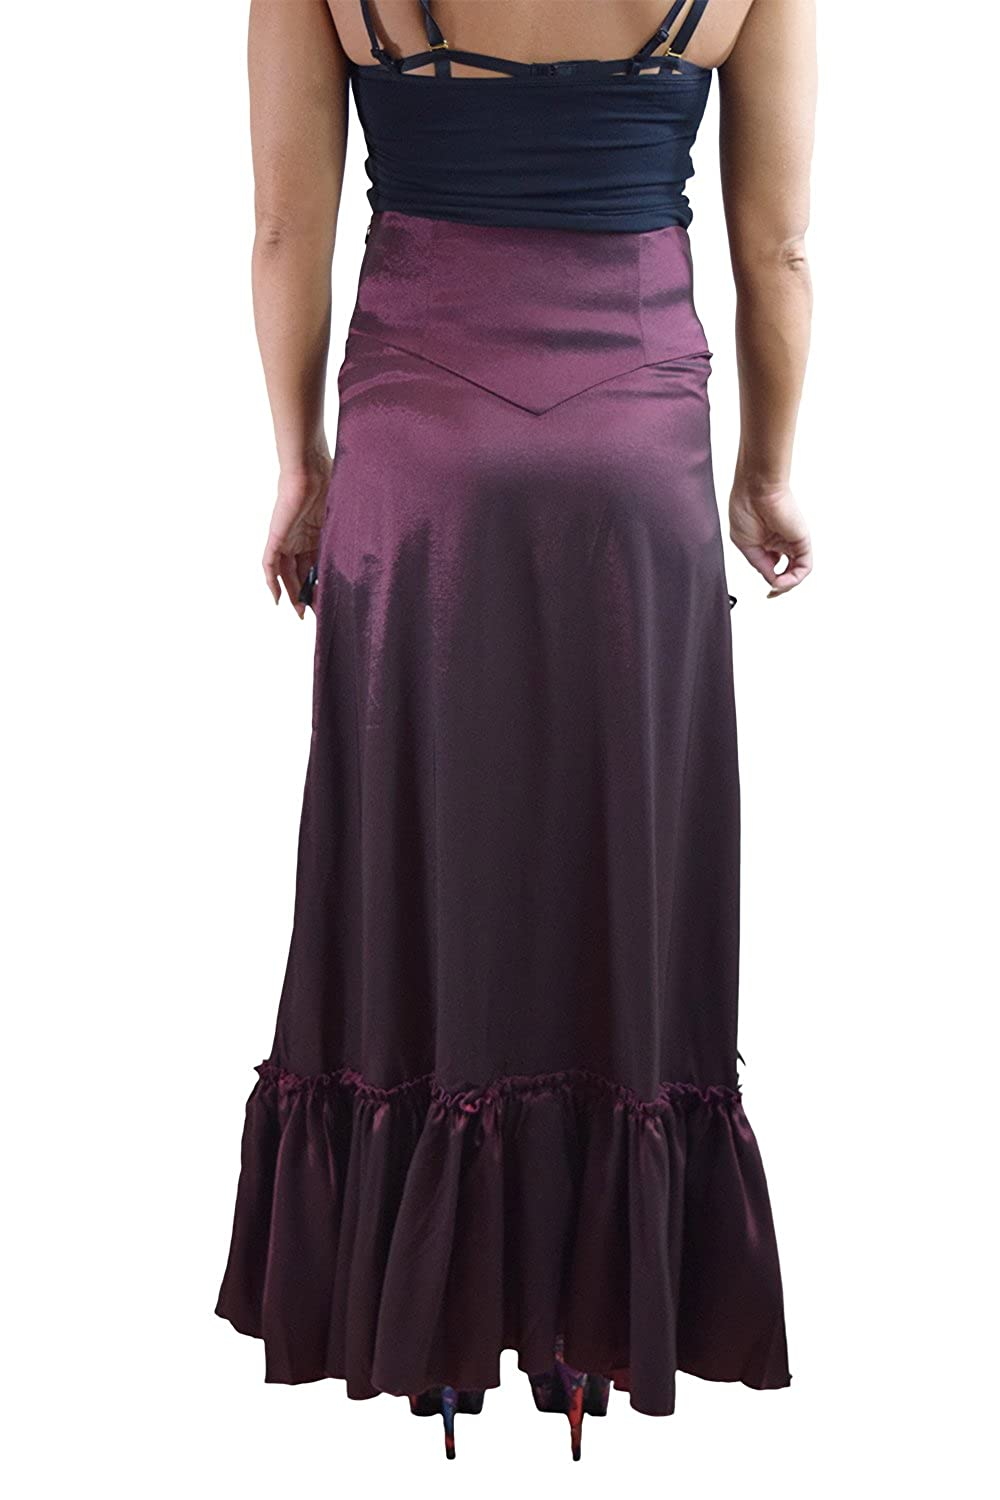 Amazon.com: Gothic Victorian Steampunk Burgundy Long Sateen 3-way Corset Skirt: Clothing